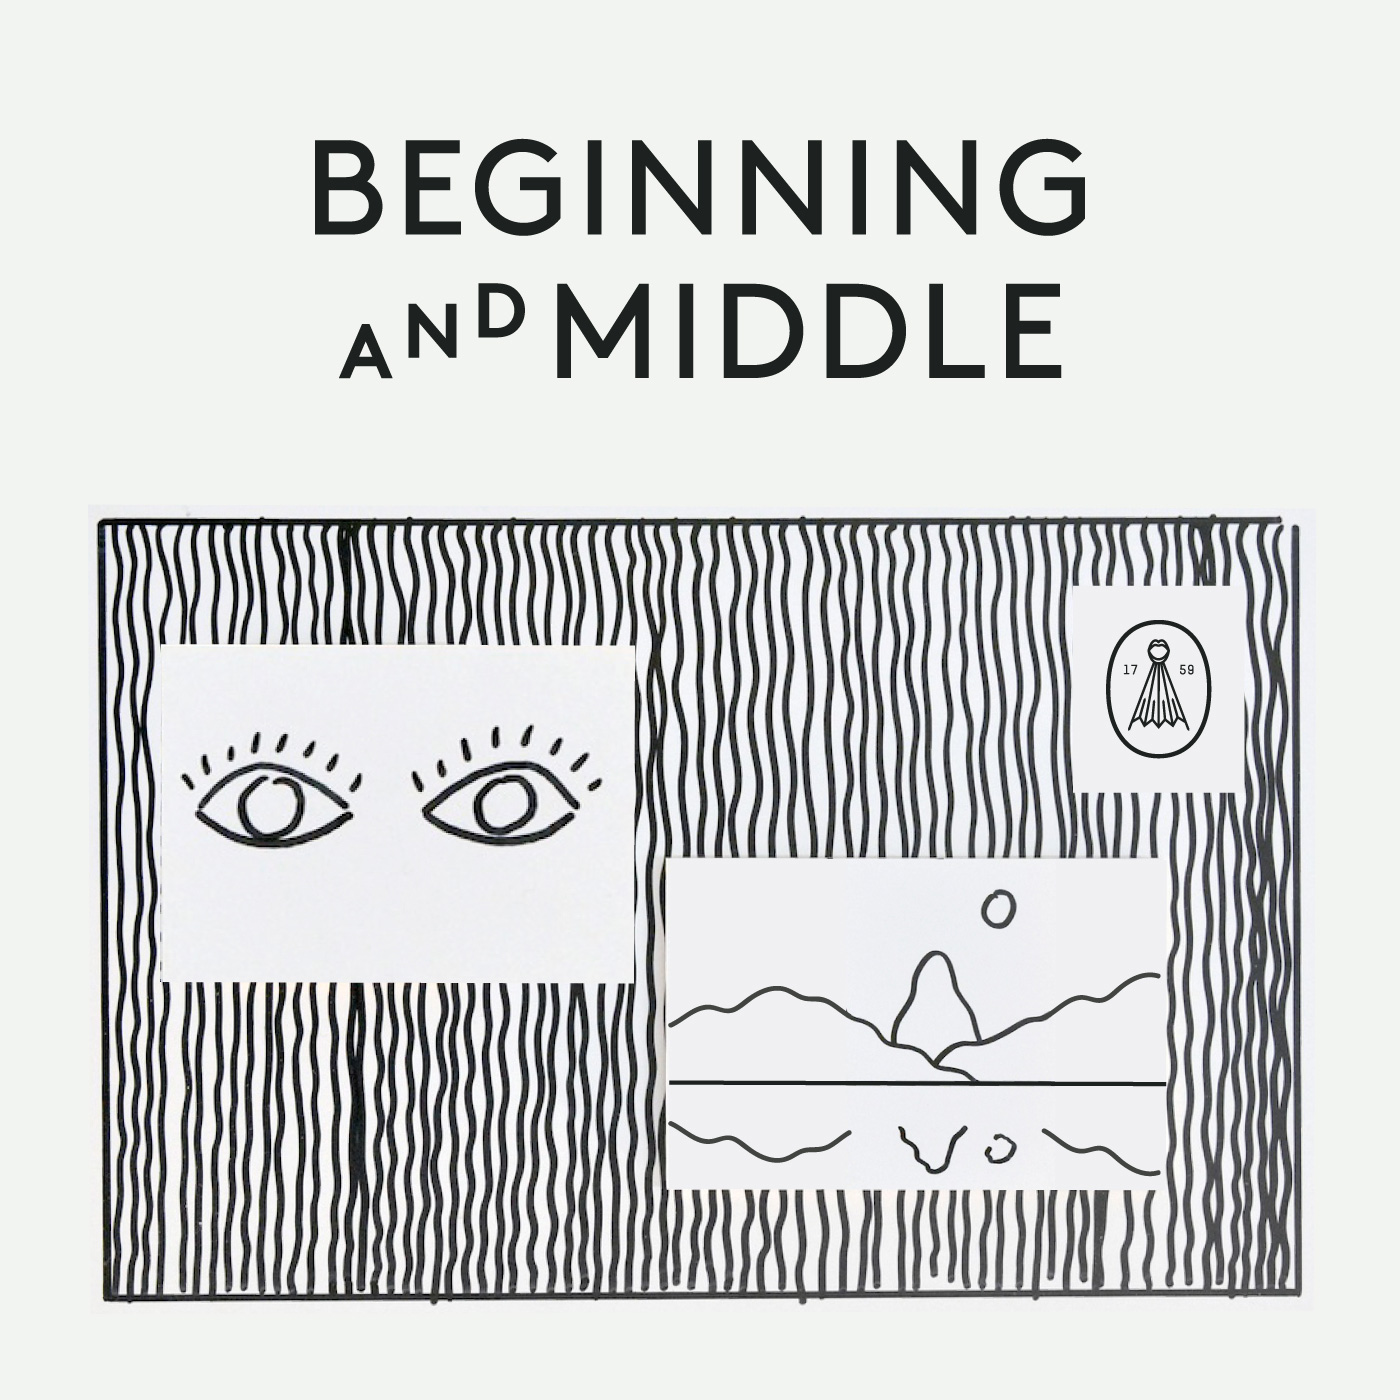 Beginning and Middle